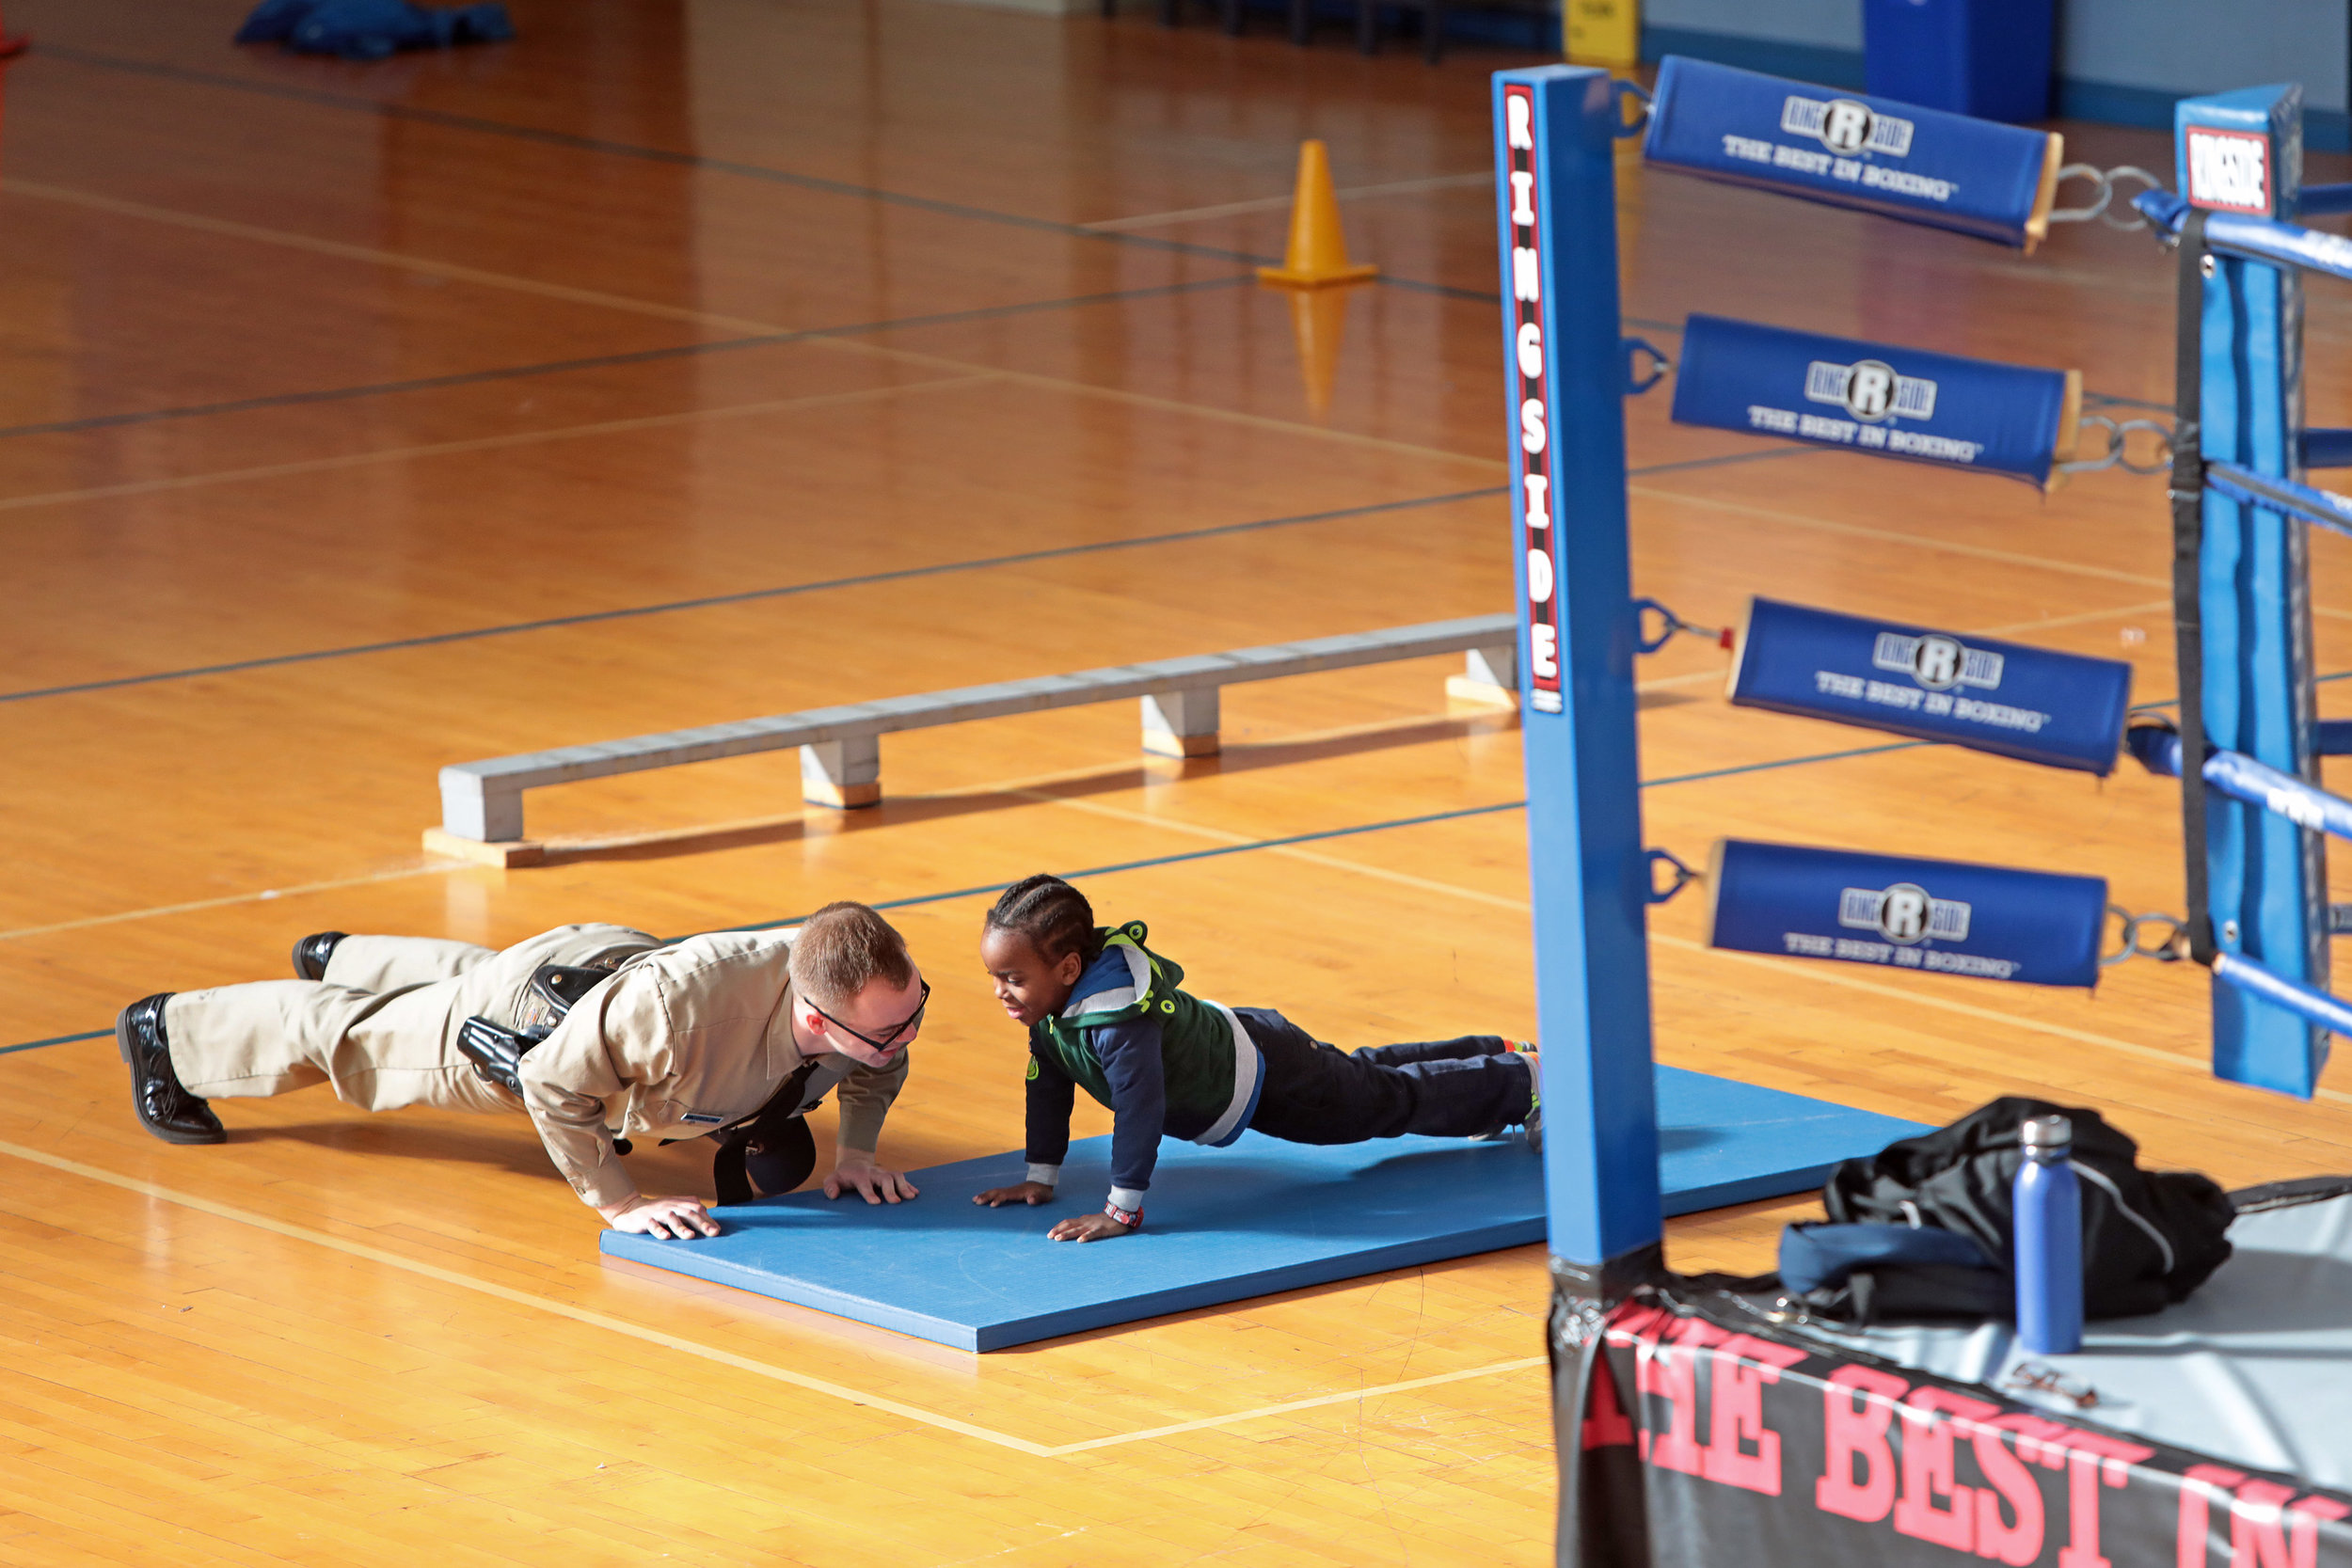 Police recruit Nate Wilson teaches 6-year-old Lazarus Baber, a student at Patrick Henry Downtown Academy, how to do a push-up during a visit to the St. Louis Police Academy as part of the Books & Badges program on Tuesday, Jan. 29, 2019. In the Books & Badges program, recruits are paired with students in the St. Louis Public School District and tutor the children once a week in reading and writing.